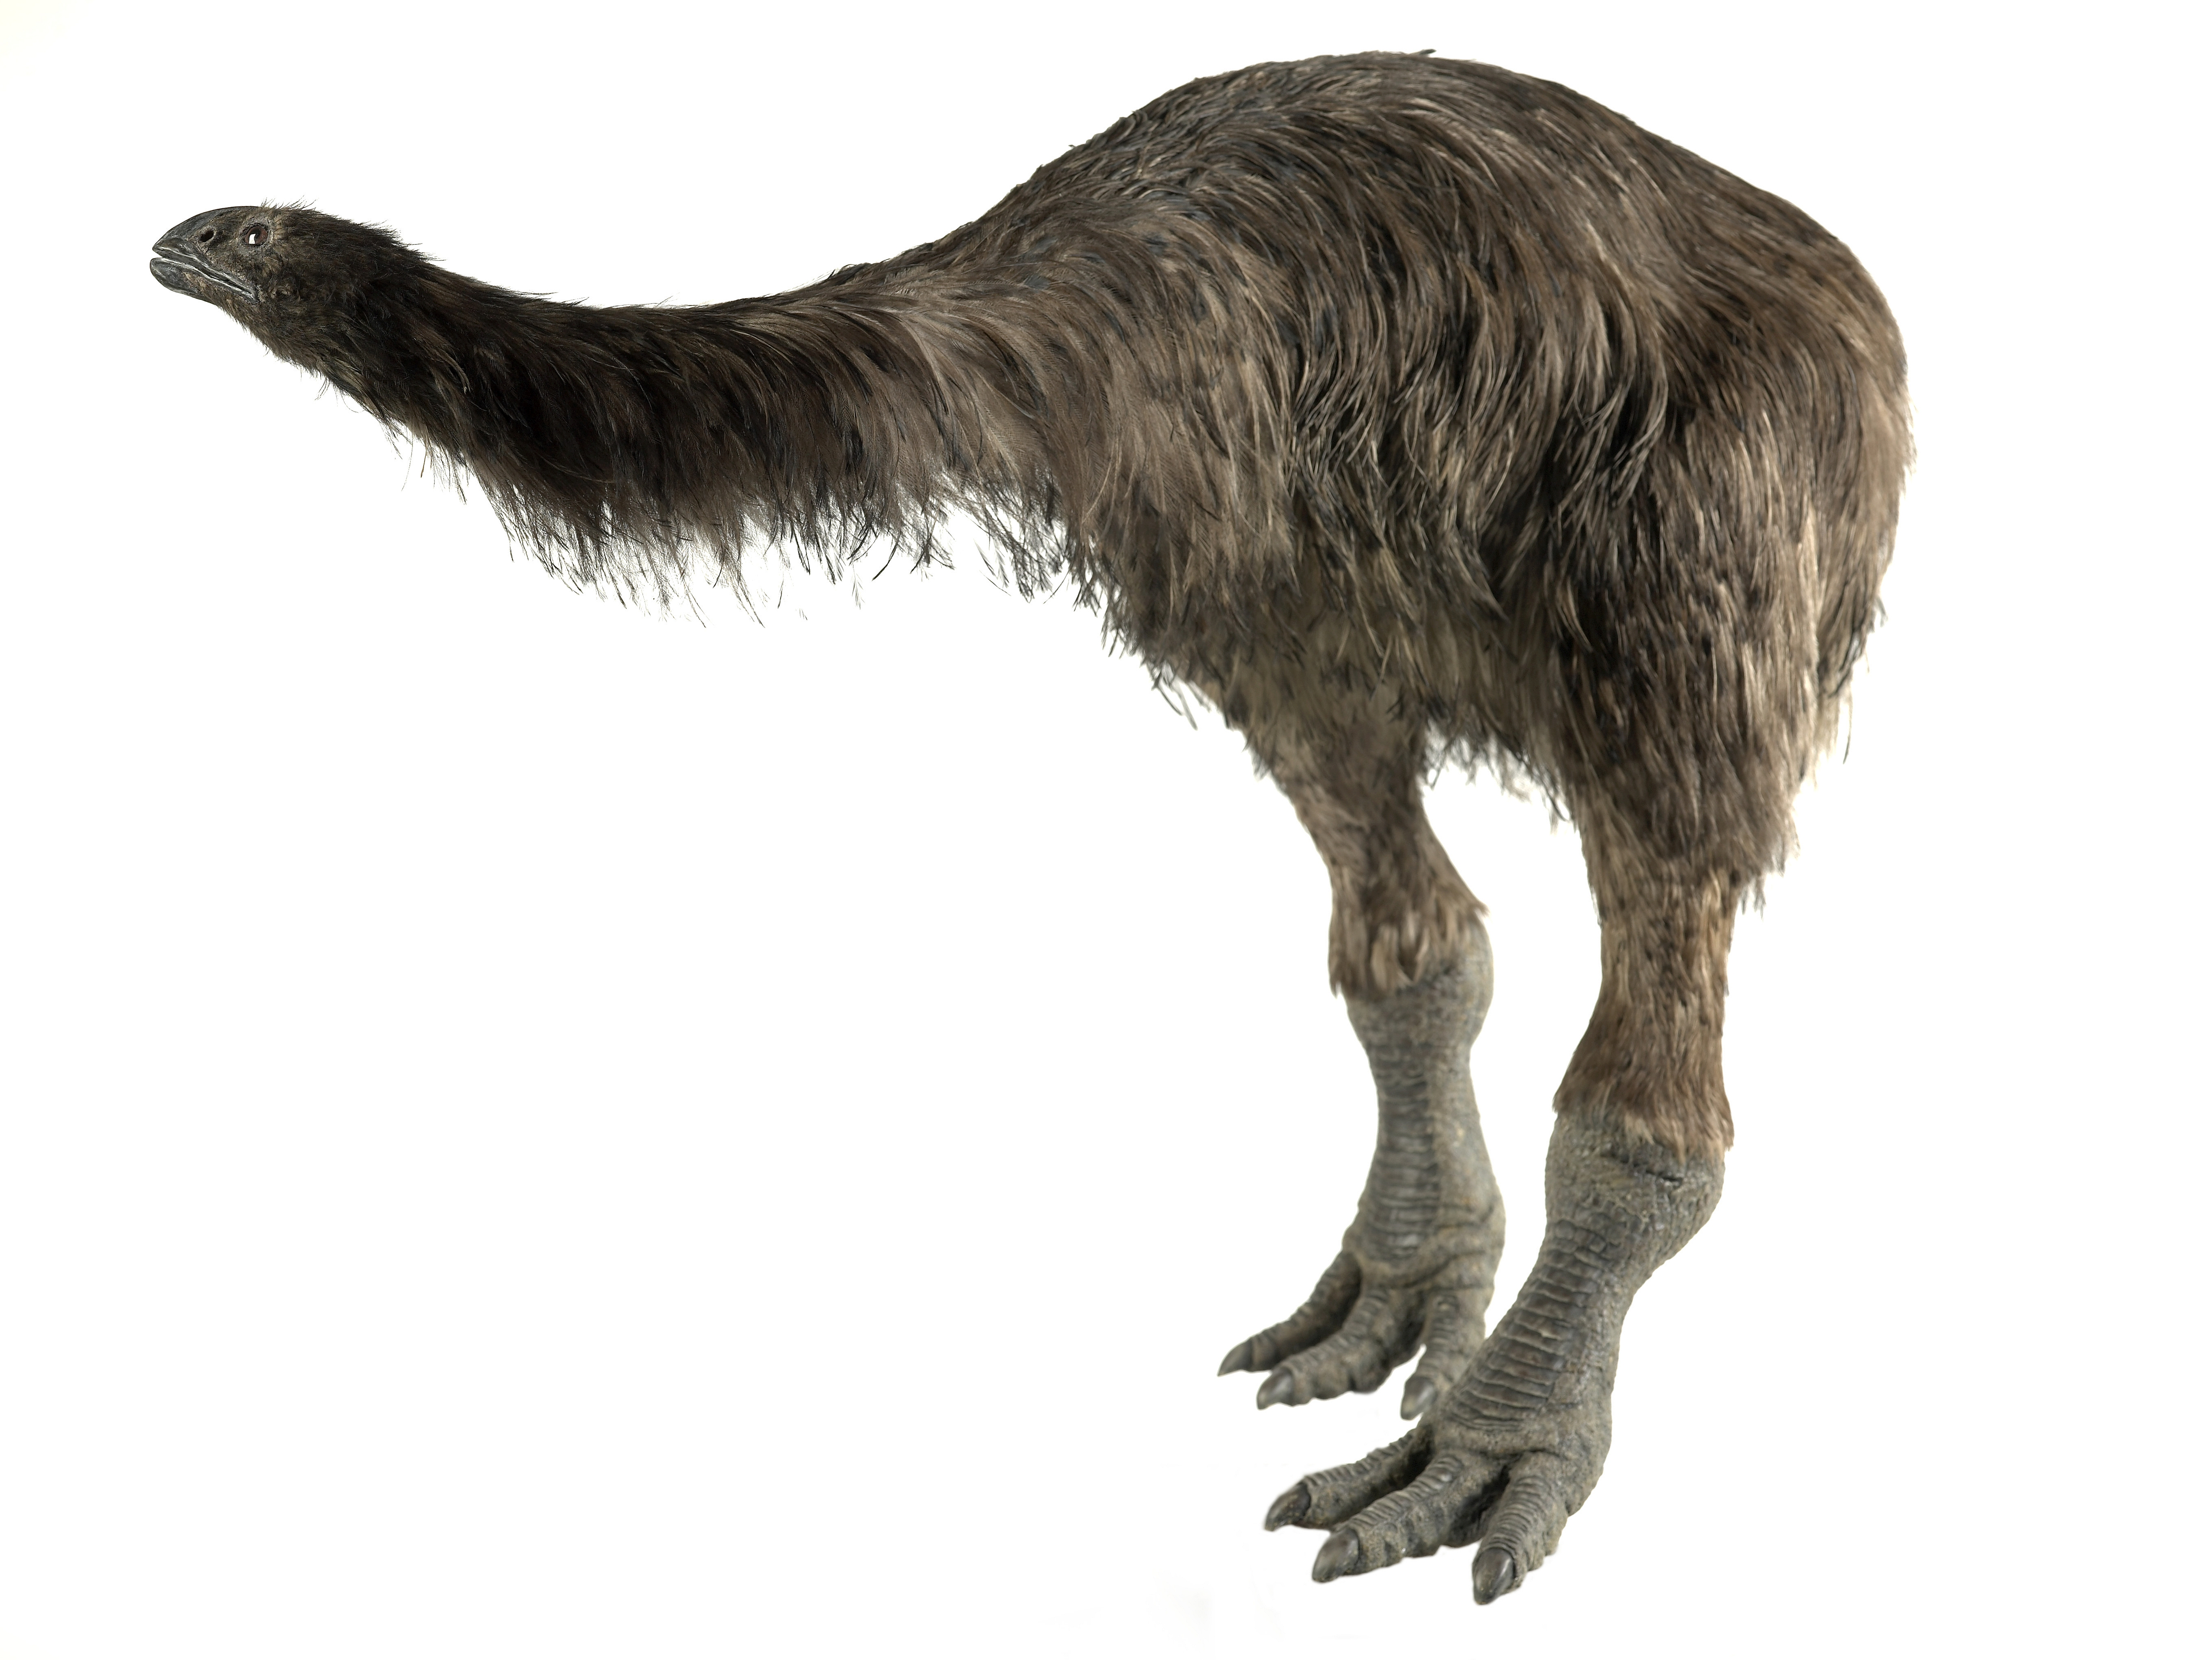 Broad-billed Moa clipart #3, Download drawings